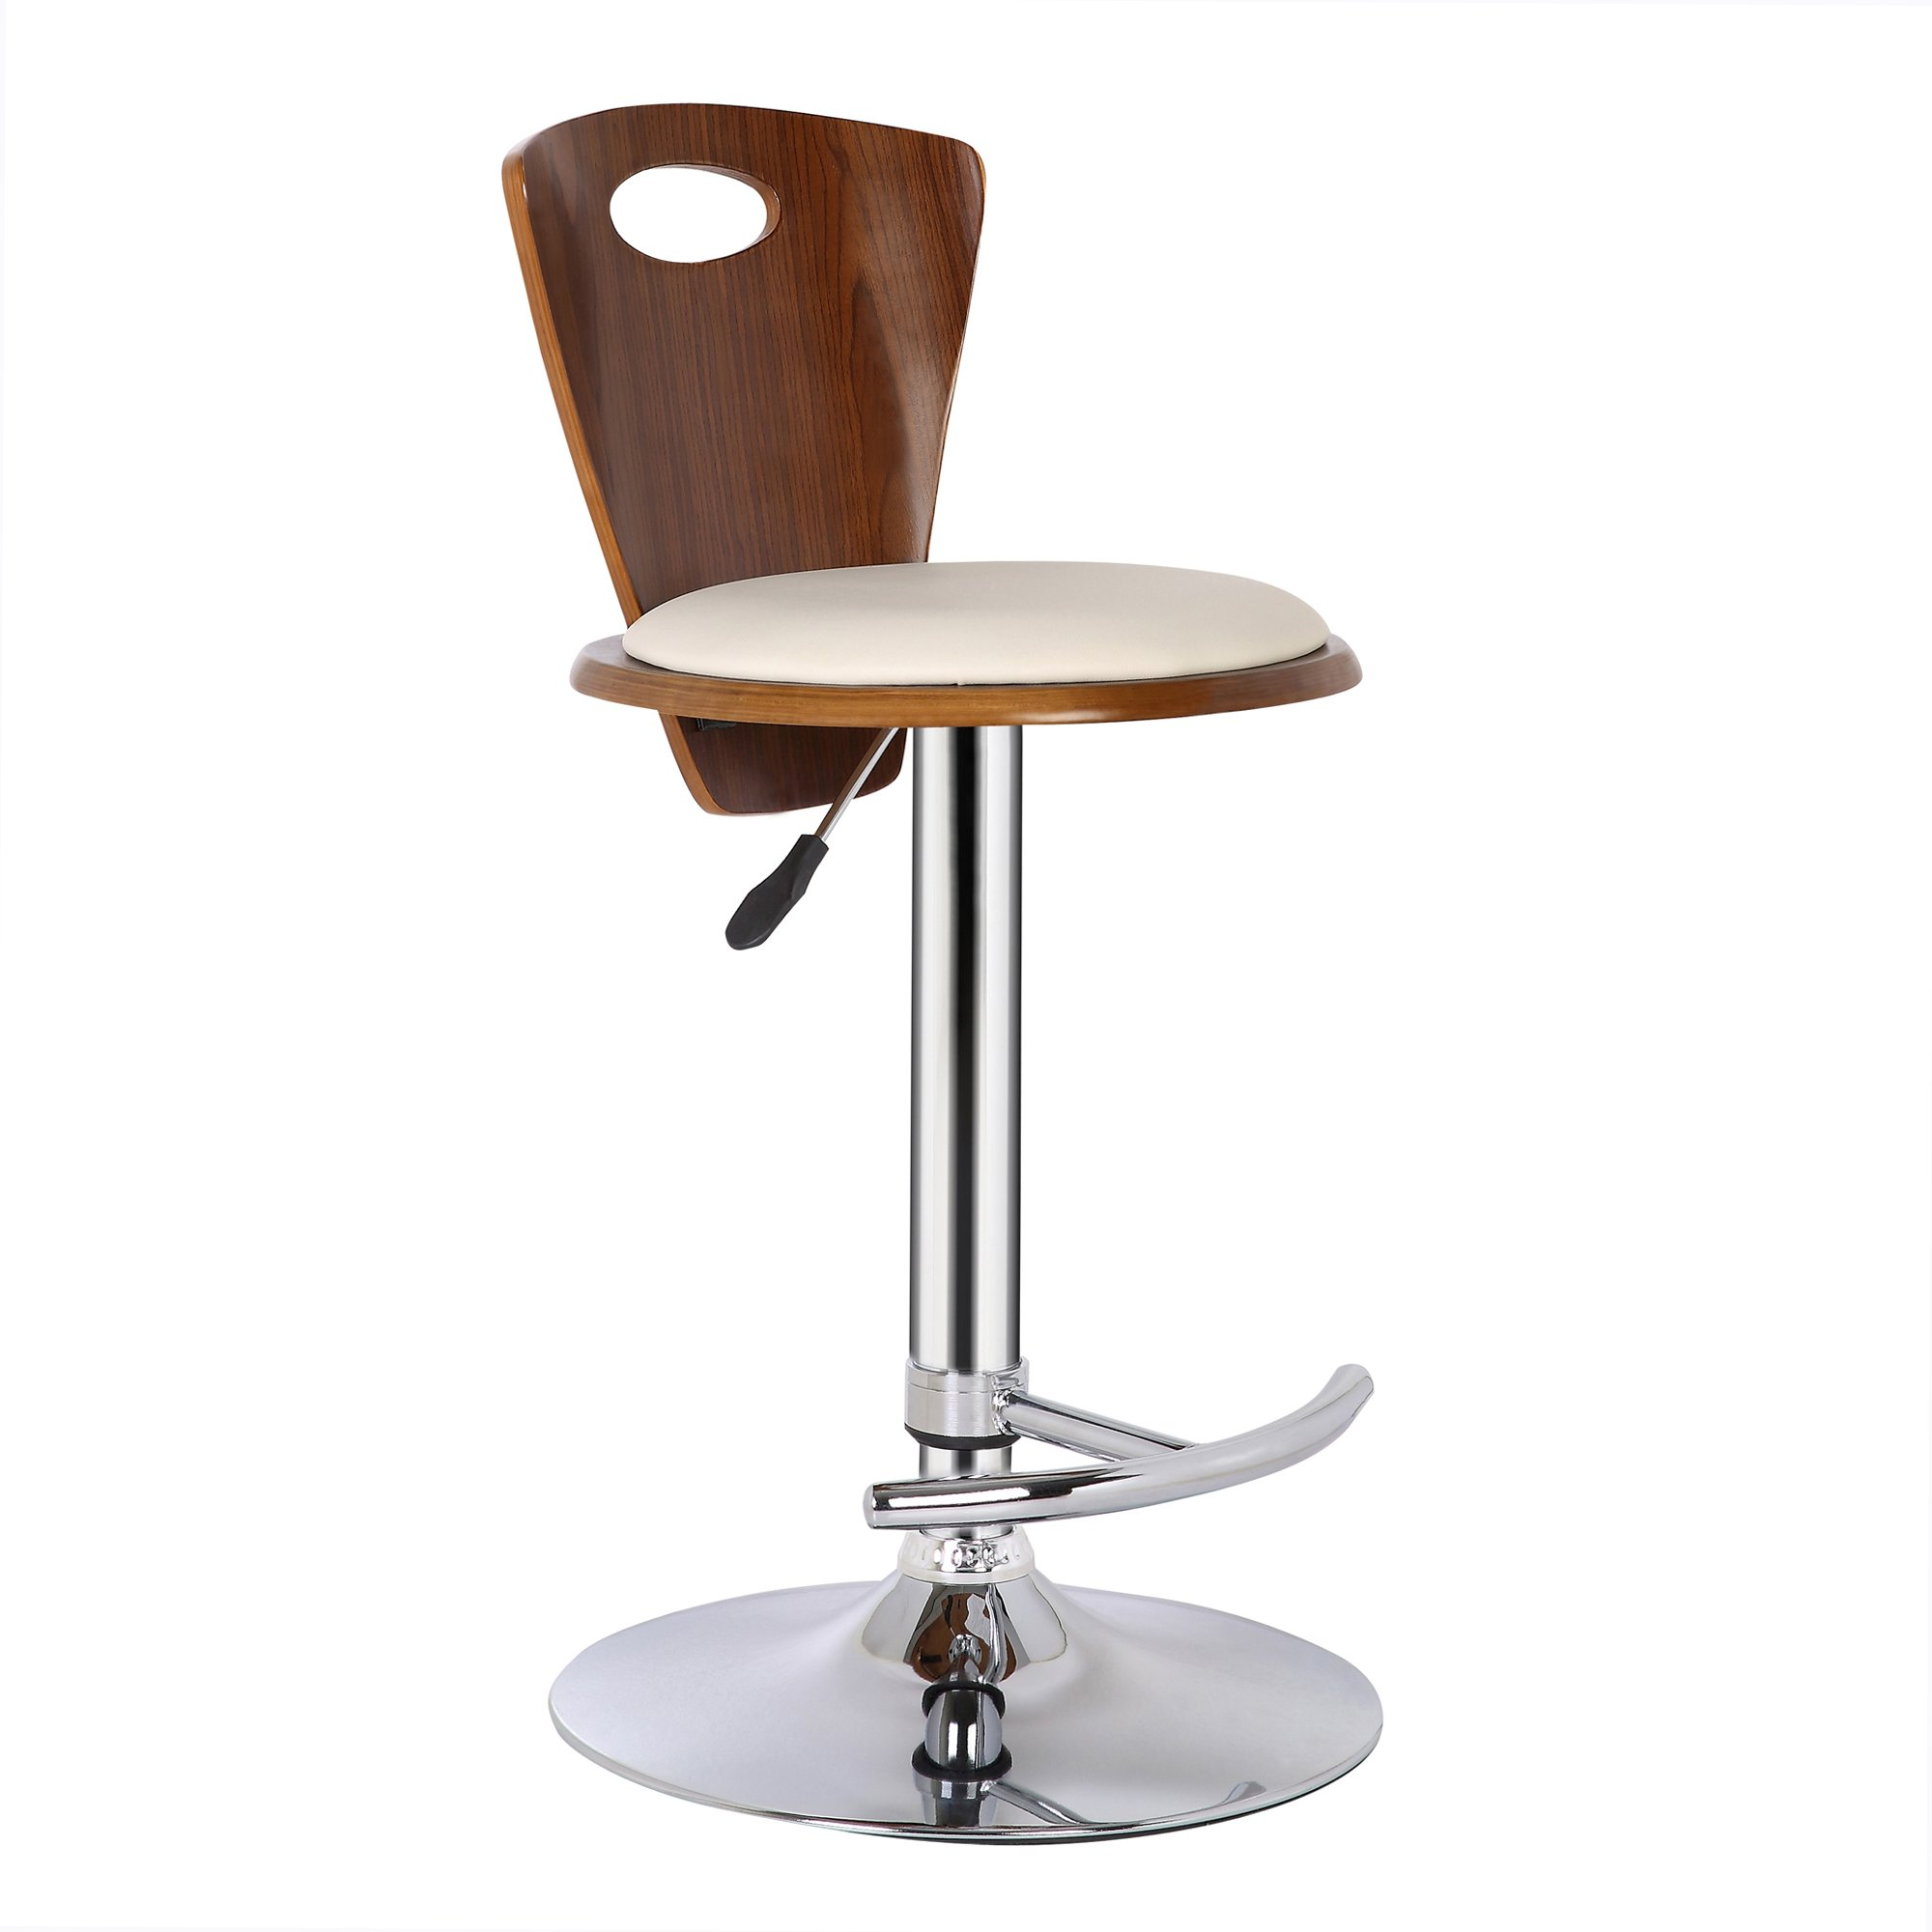 Armen Living LCSEBACRWA Seattle Barstool in Cream Faux Leather, Walnut Wood and Chrome Finish by Armen Living (Image #2)